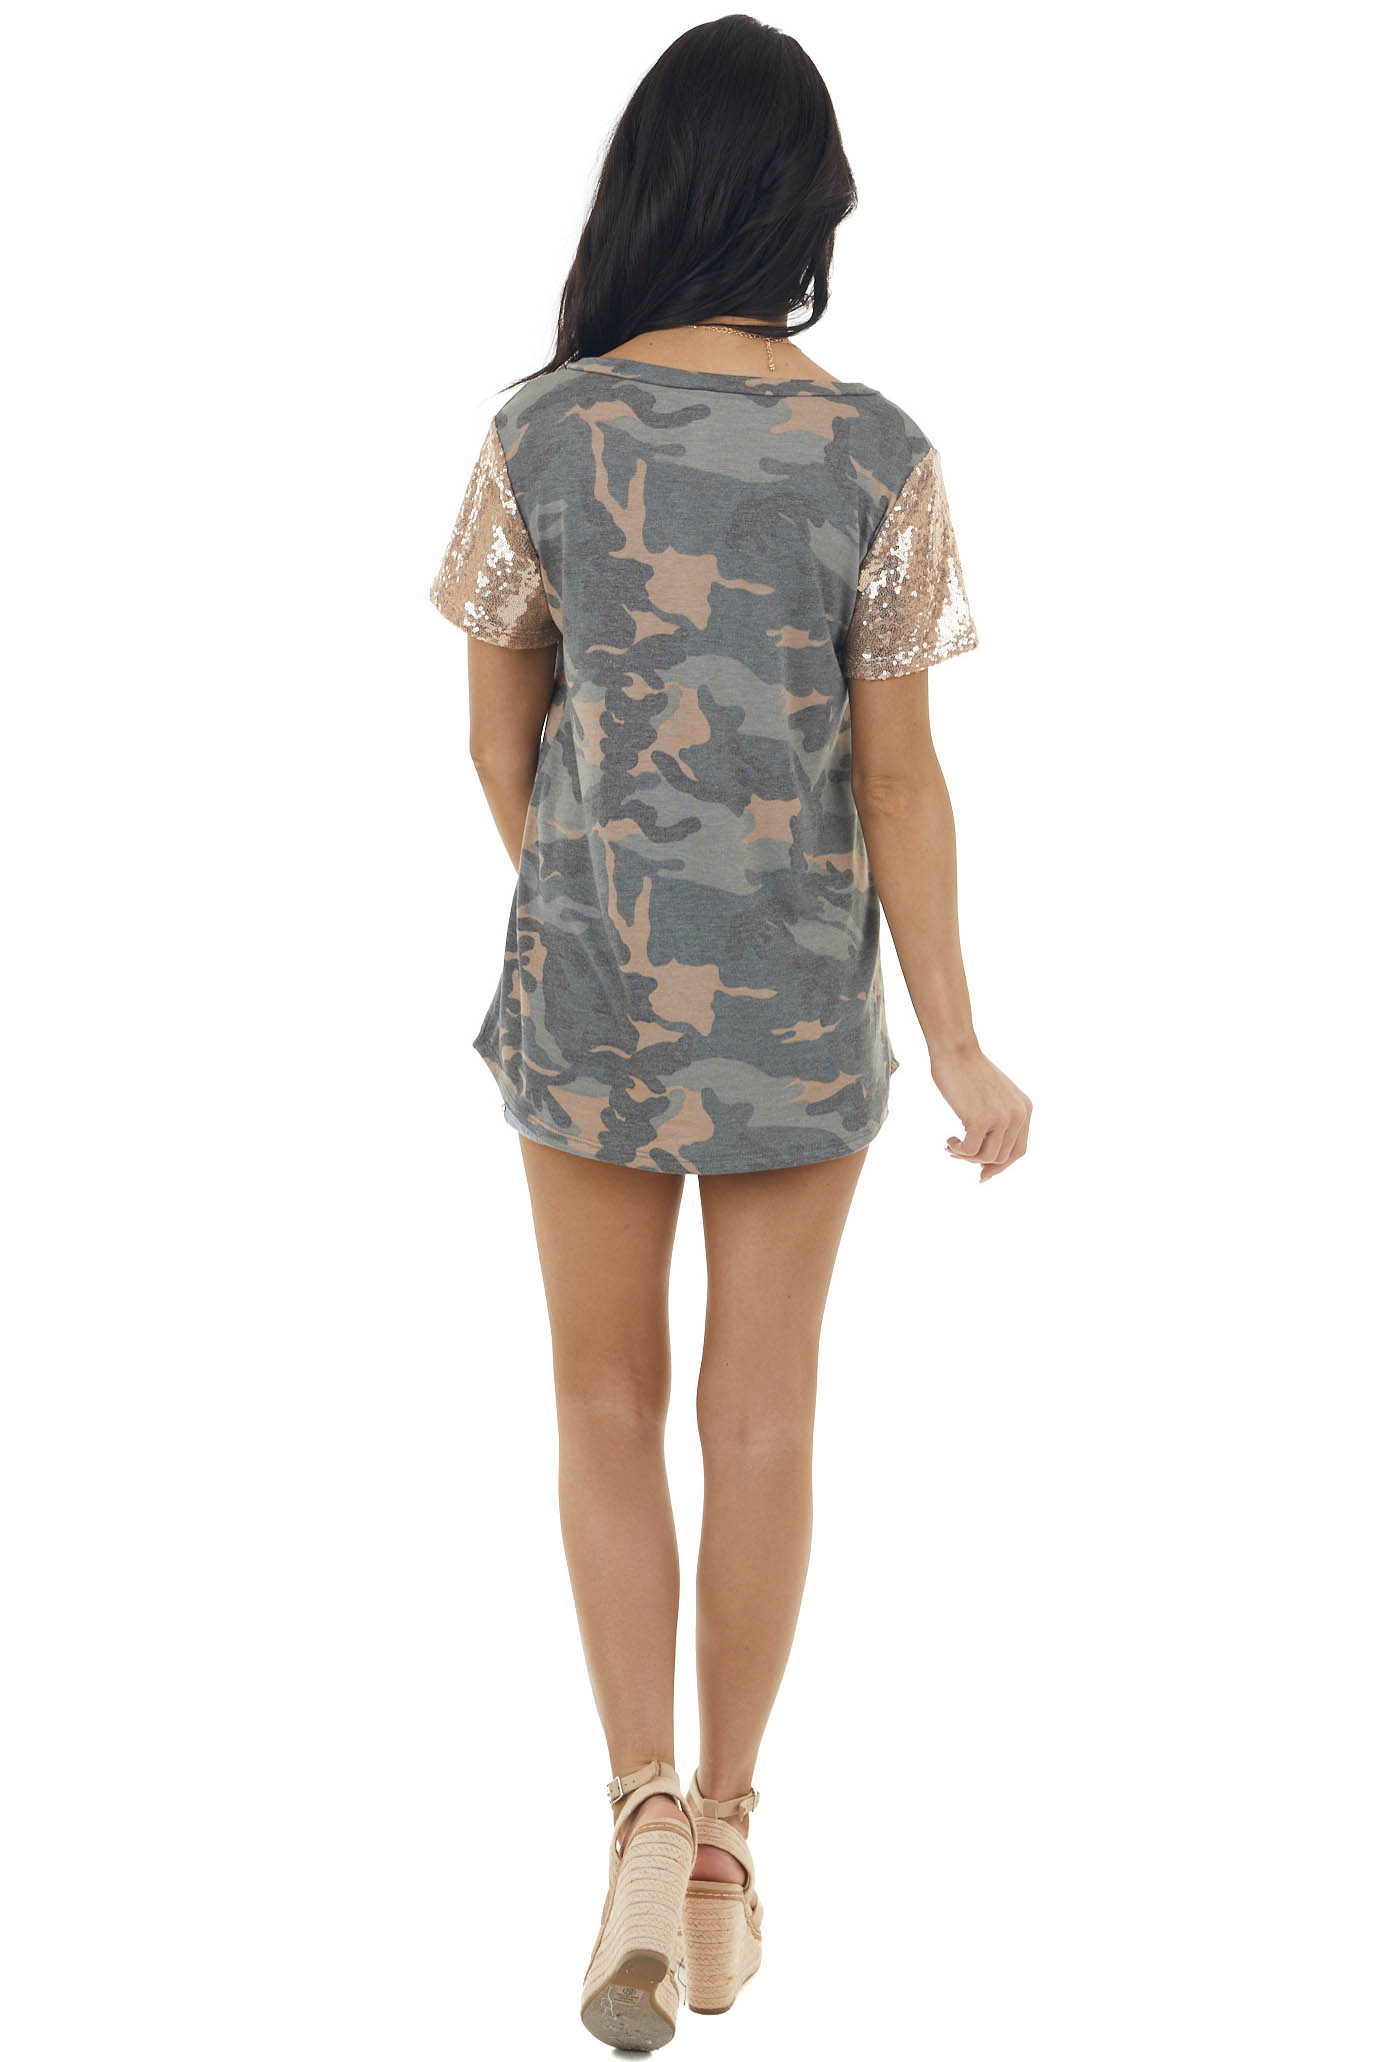 Forest Green Camo Print Tee with Rose Gold Sequin Sleeve